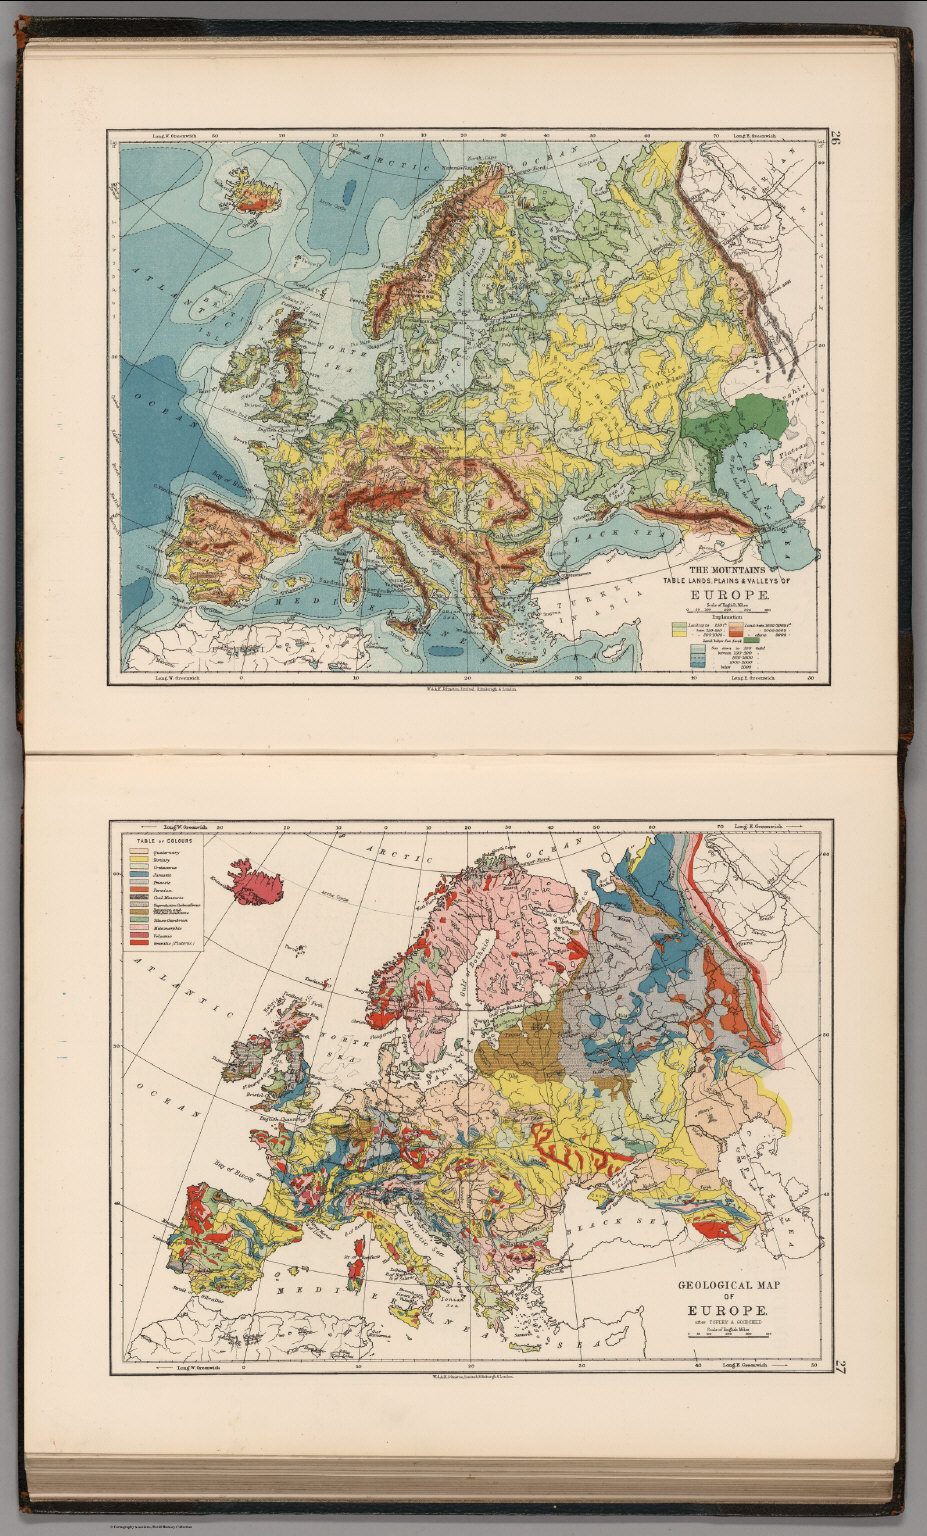 Mountains Table Lands Plains Valleys Of Europe Geological Map